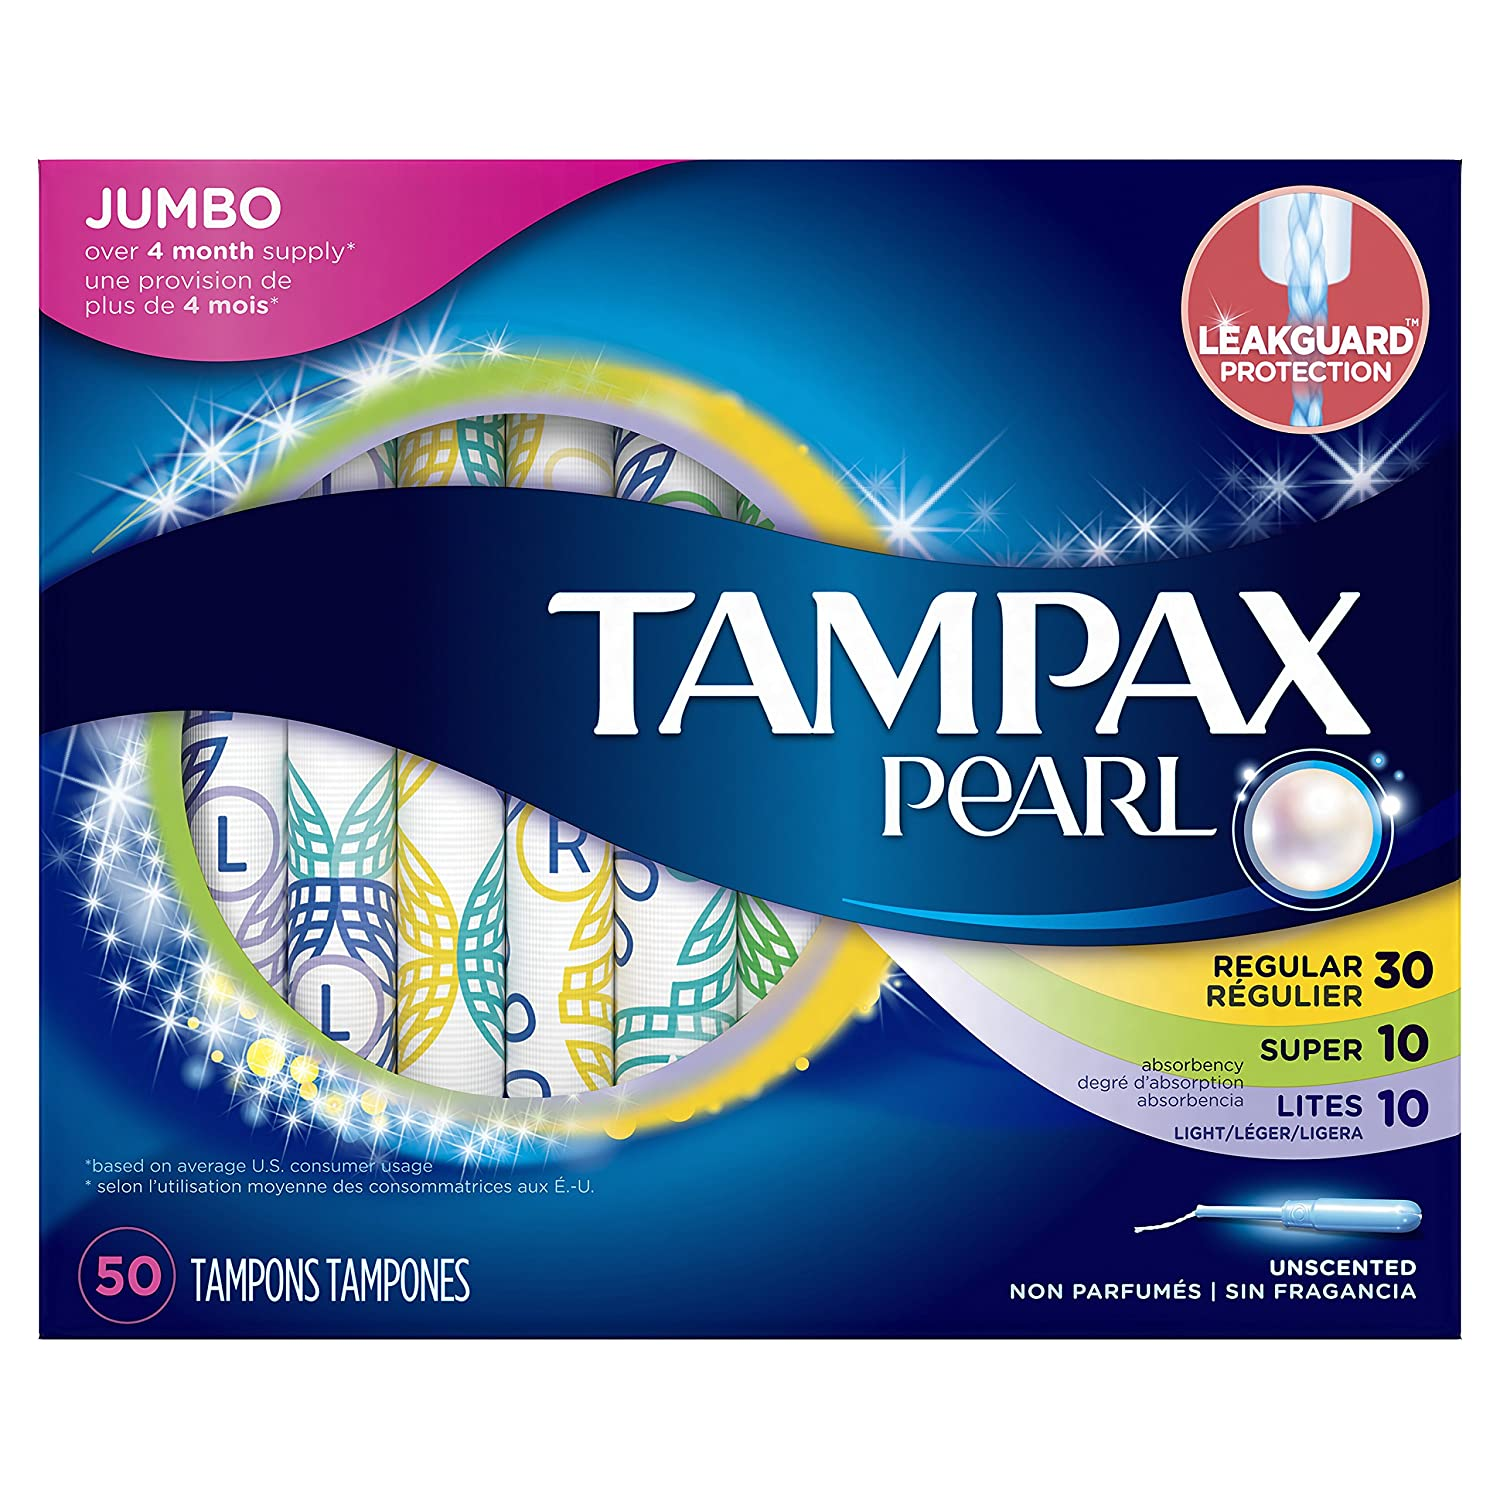 Tampax Pearl Plastic Tampons, Multipack, Light/Regular/Super Absorbency, Unscented, 50 Count NA